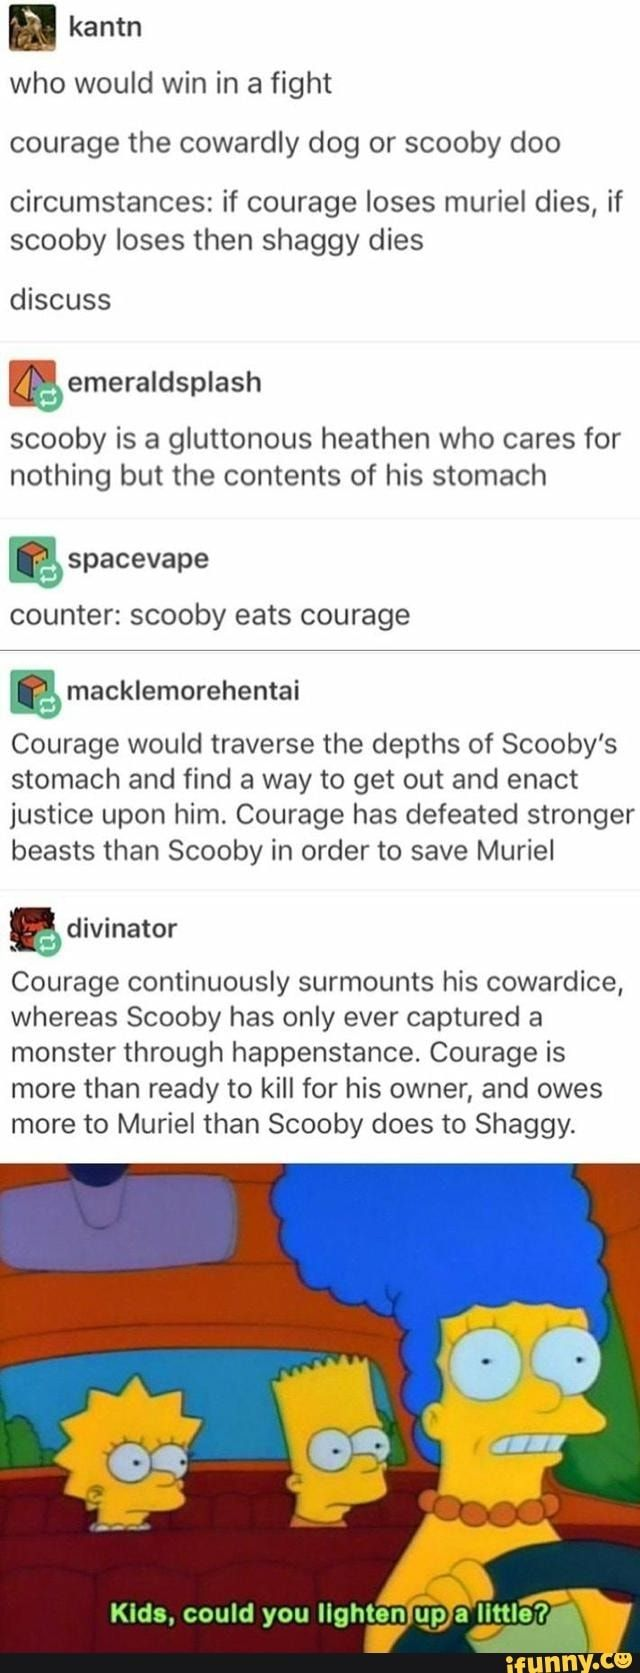 Fair point. On the other hand Scooby is a great Dane which can clock in speeds up to 25-40 mob. Courage ain't getting anywhere with his twiggy legs.